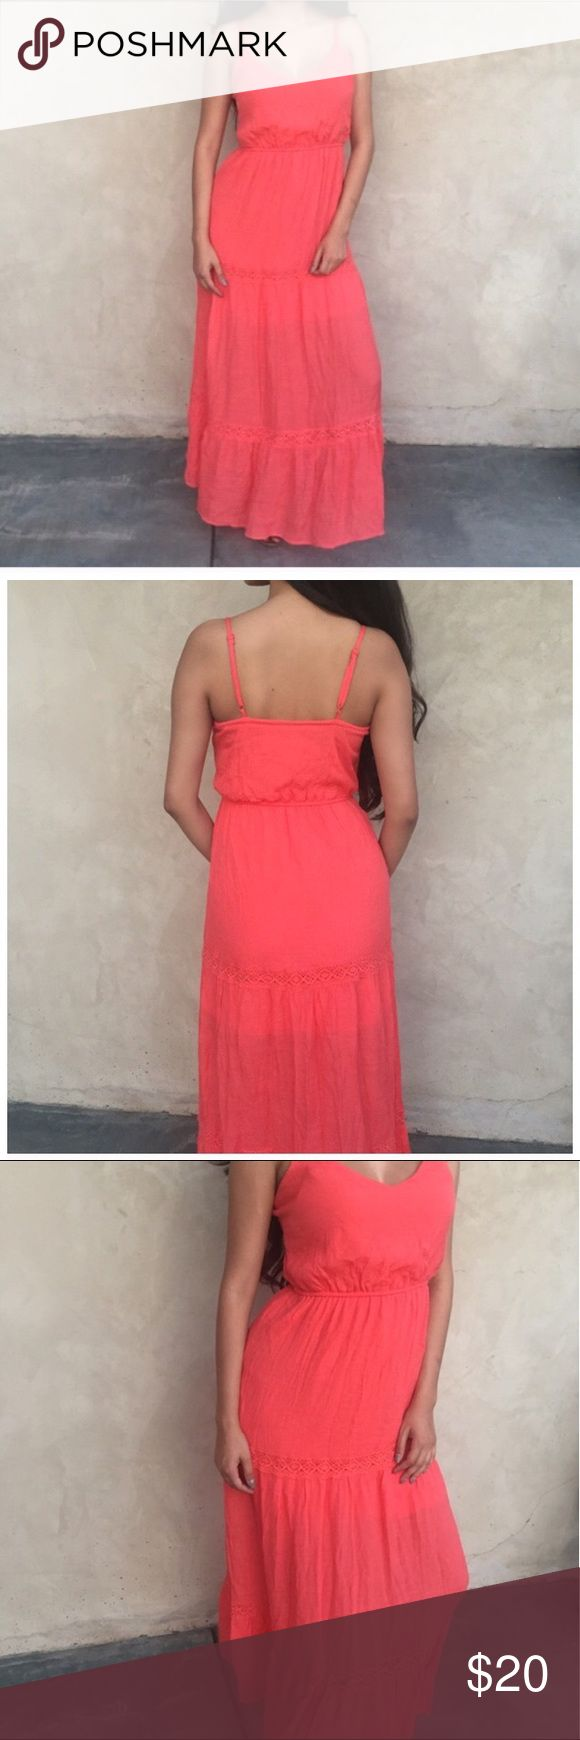 🆕 Coral Maxi Dress Coral Maxi Dress - V neck , Crochet details and adjustable straps. New with tag. HeartSoul Dresses Maxi